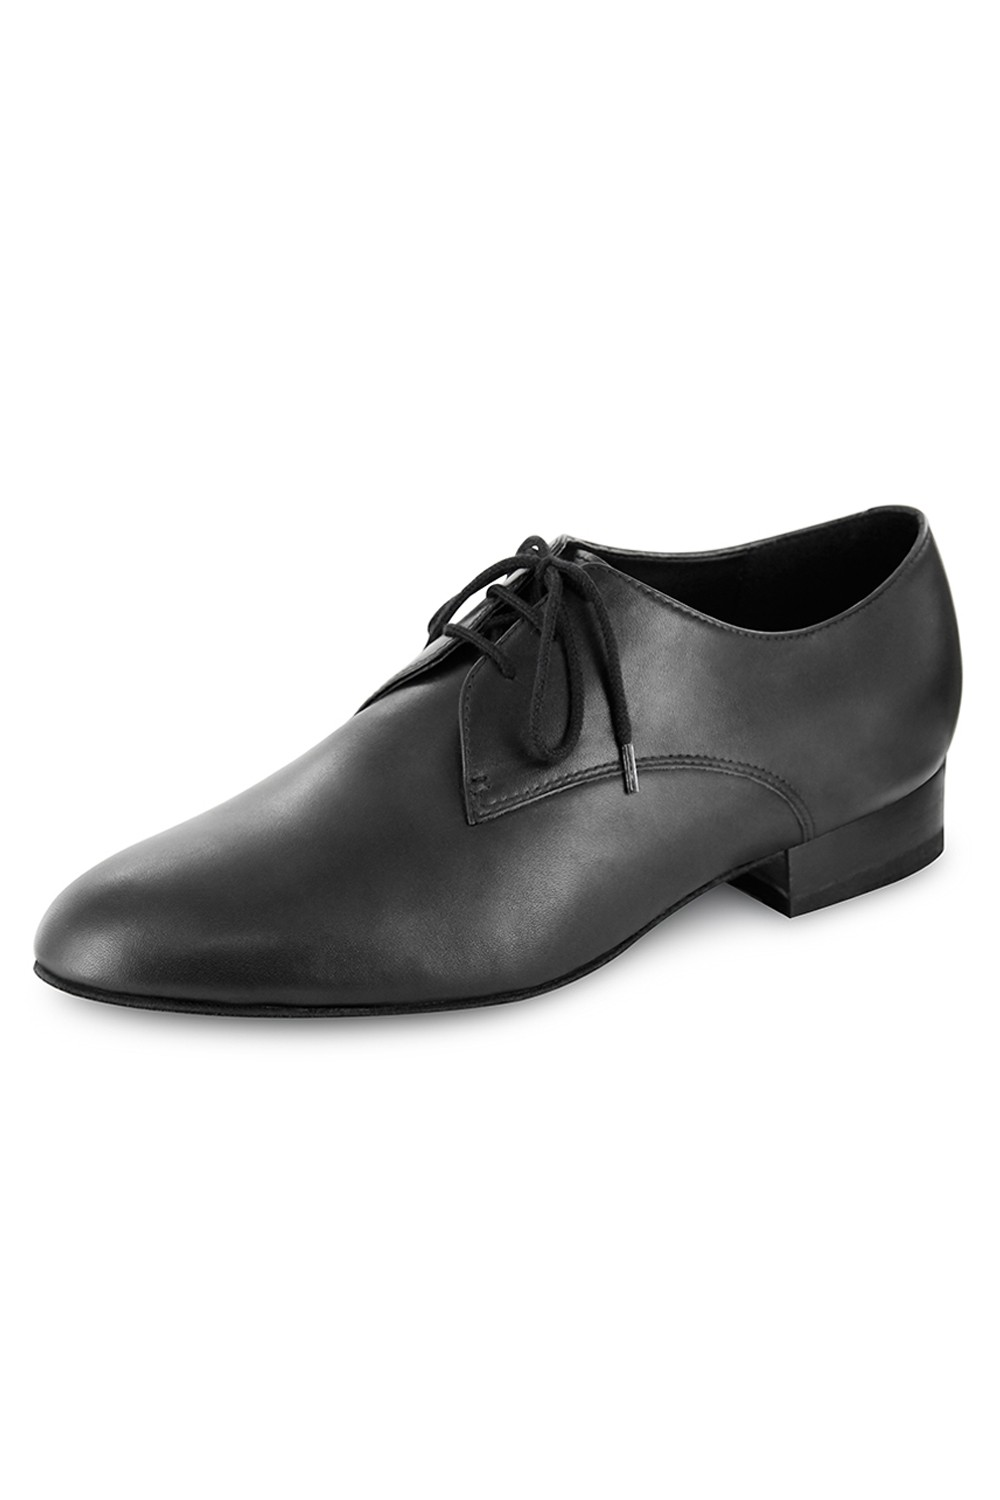 Darby Men's Ballroom & Latin Shoes